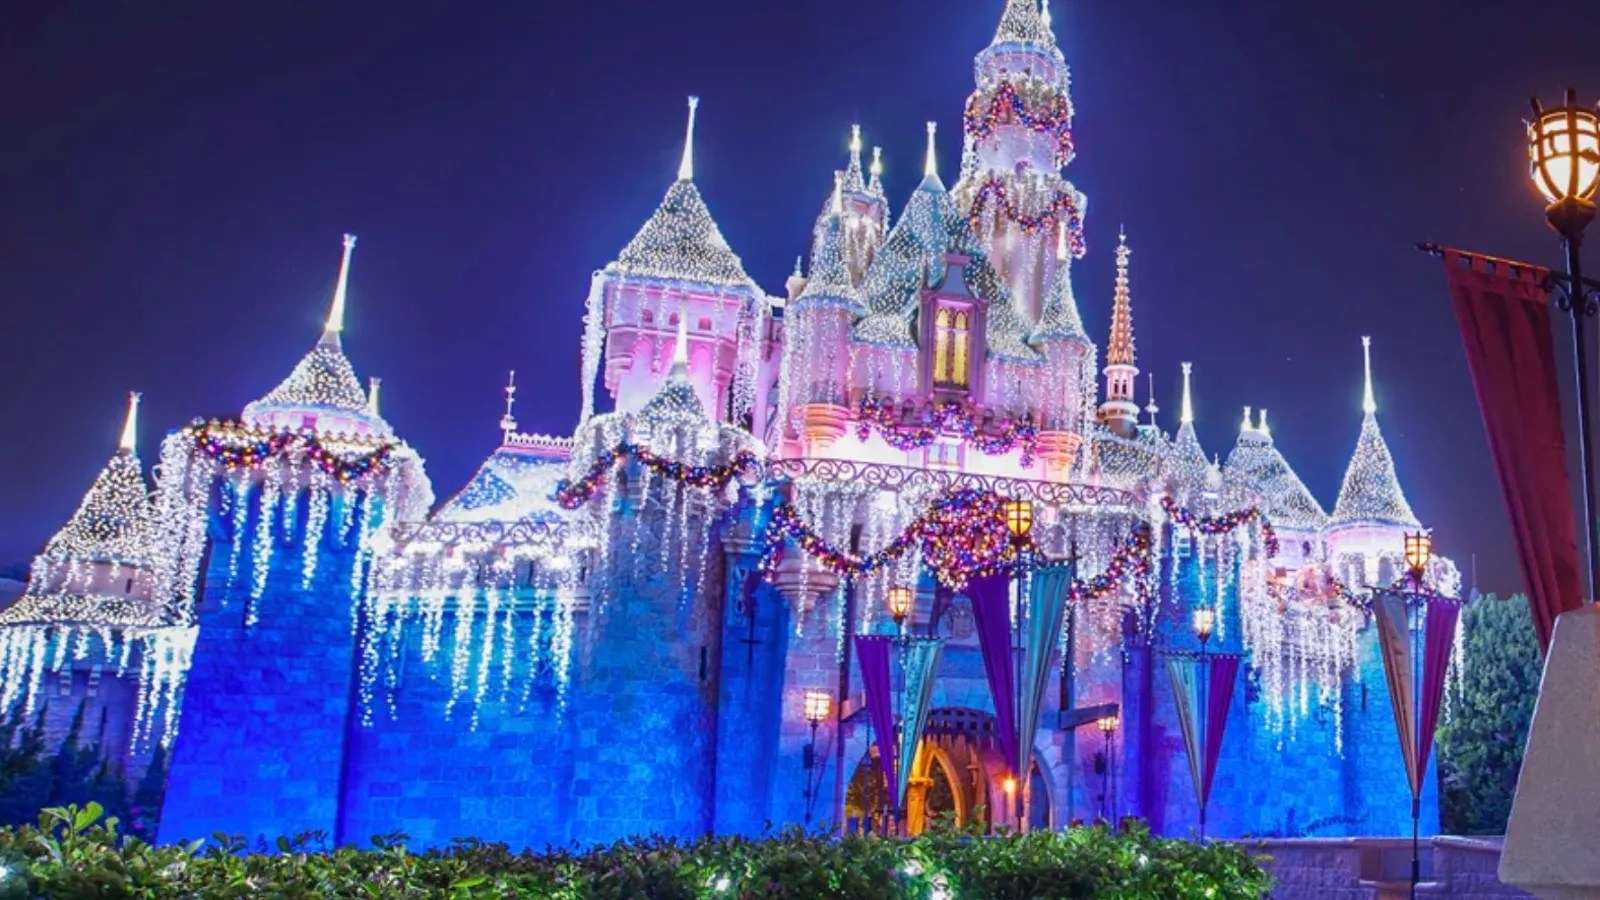 Animated Christmas Tree Wallpaper This Time Lapse Video Of Disneyland Transforming For The